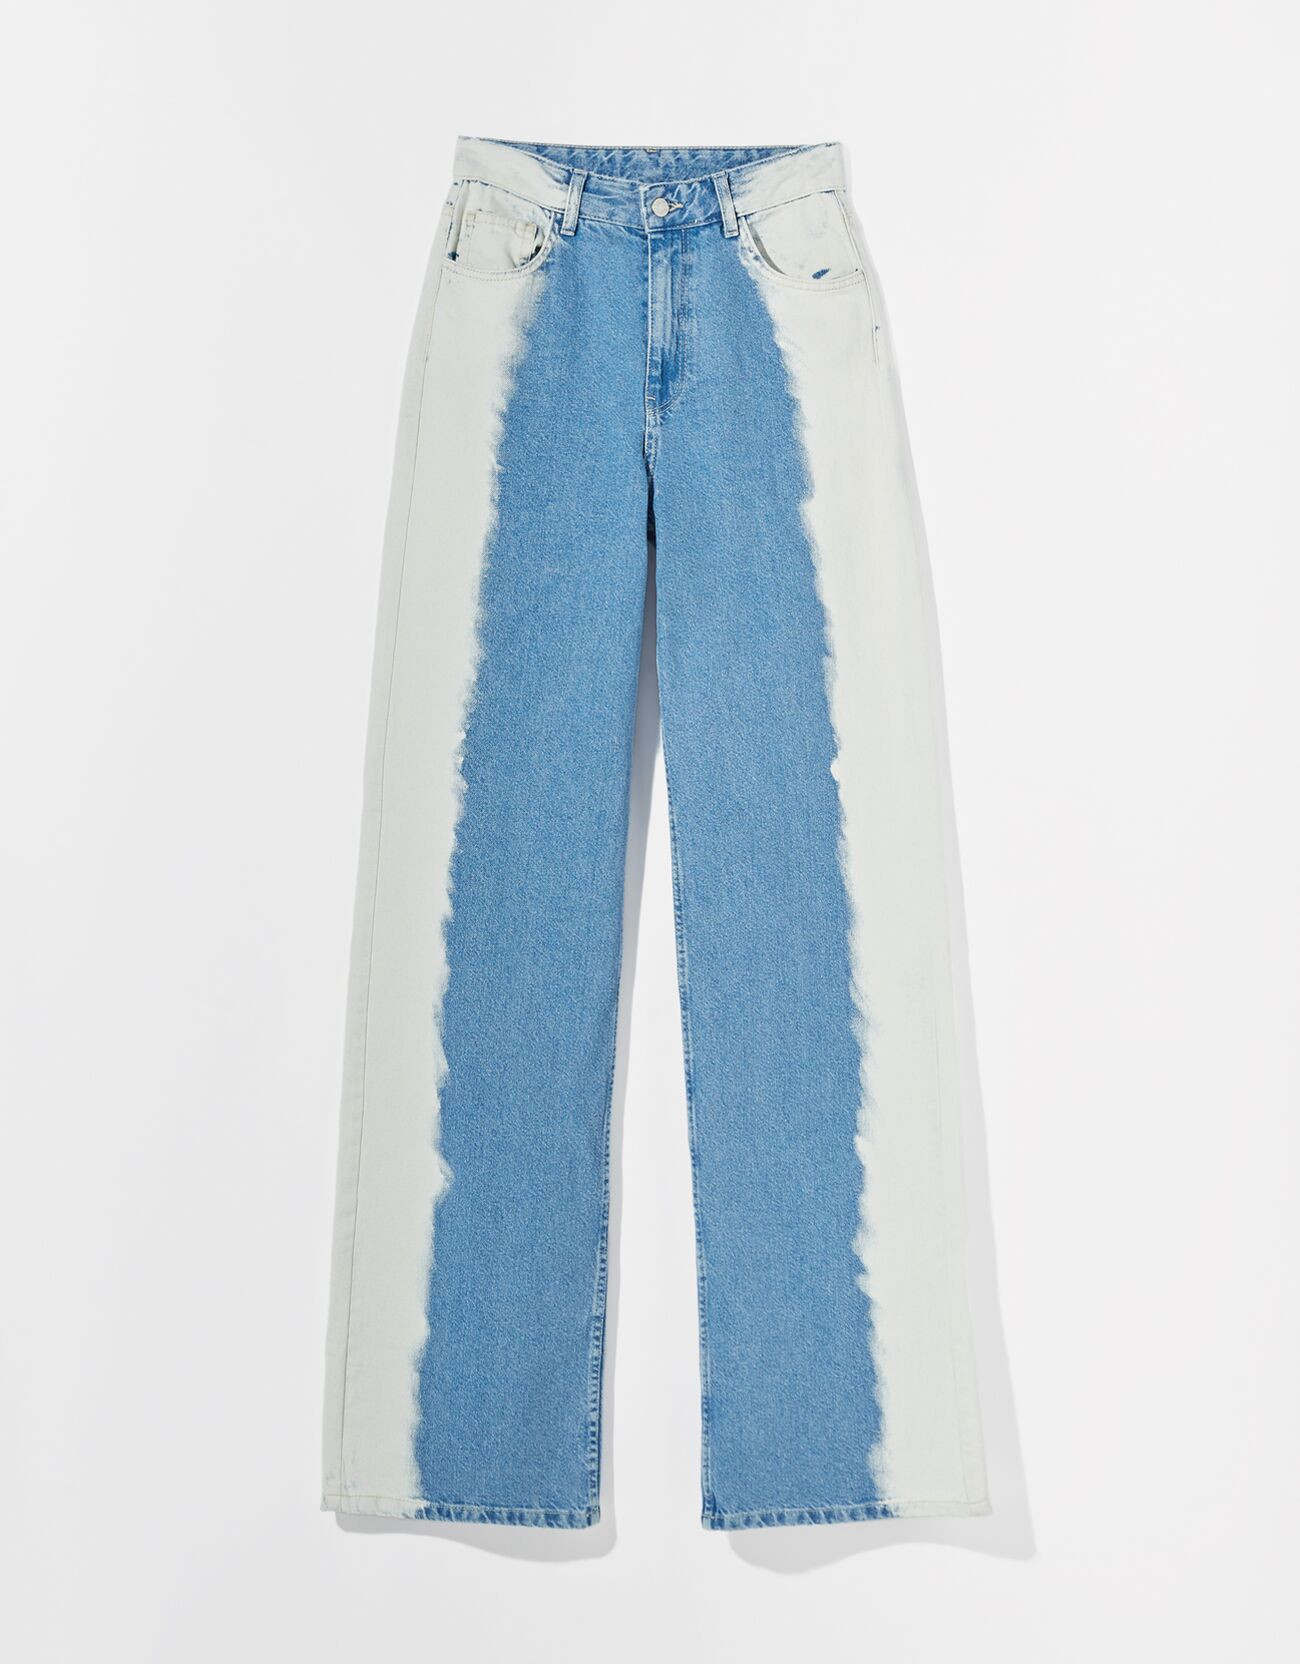 Jeans 90's contraste lateral bicolor.